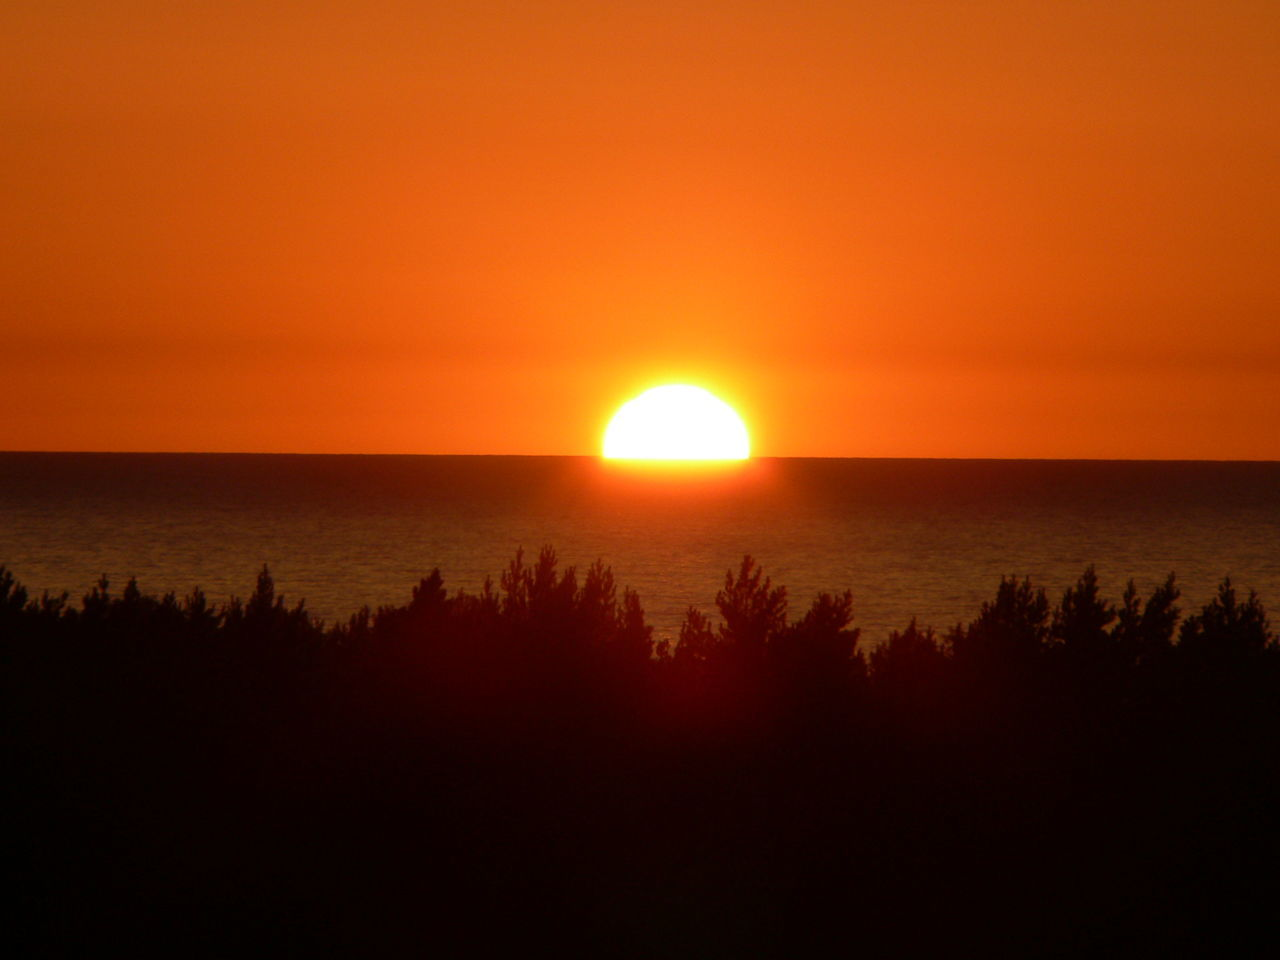 Baltic sea sunset Beauty In Nature Clear Sky Horizon Over Water Idyllic Nature Orange Color Romantic Sky Scenics Sea Silhouette Sky Sun Sunset Tranquil Scene Tranquility Water